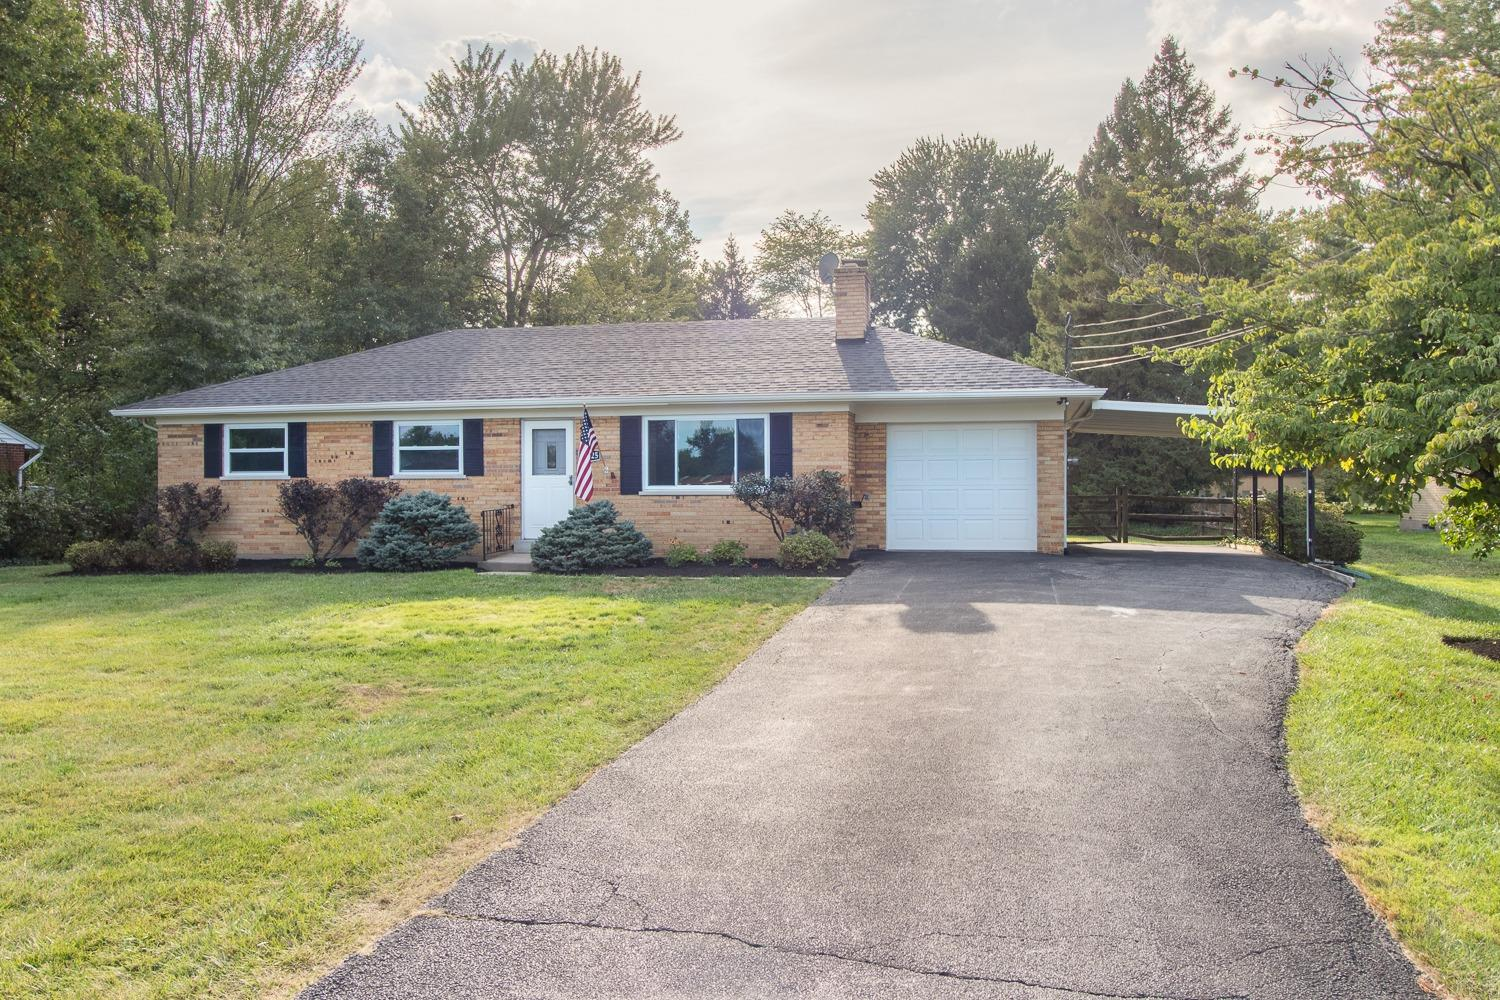 11825 Enyart Road, Symmes Twp, Ohio 45140, 3 Bedrooms Bedrooms, 6 Rooms Rooms,2 BathroomsBathrooms,Single Family Residence,For Sale,Enyart,1713131